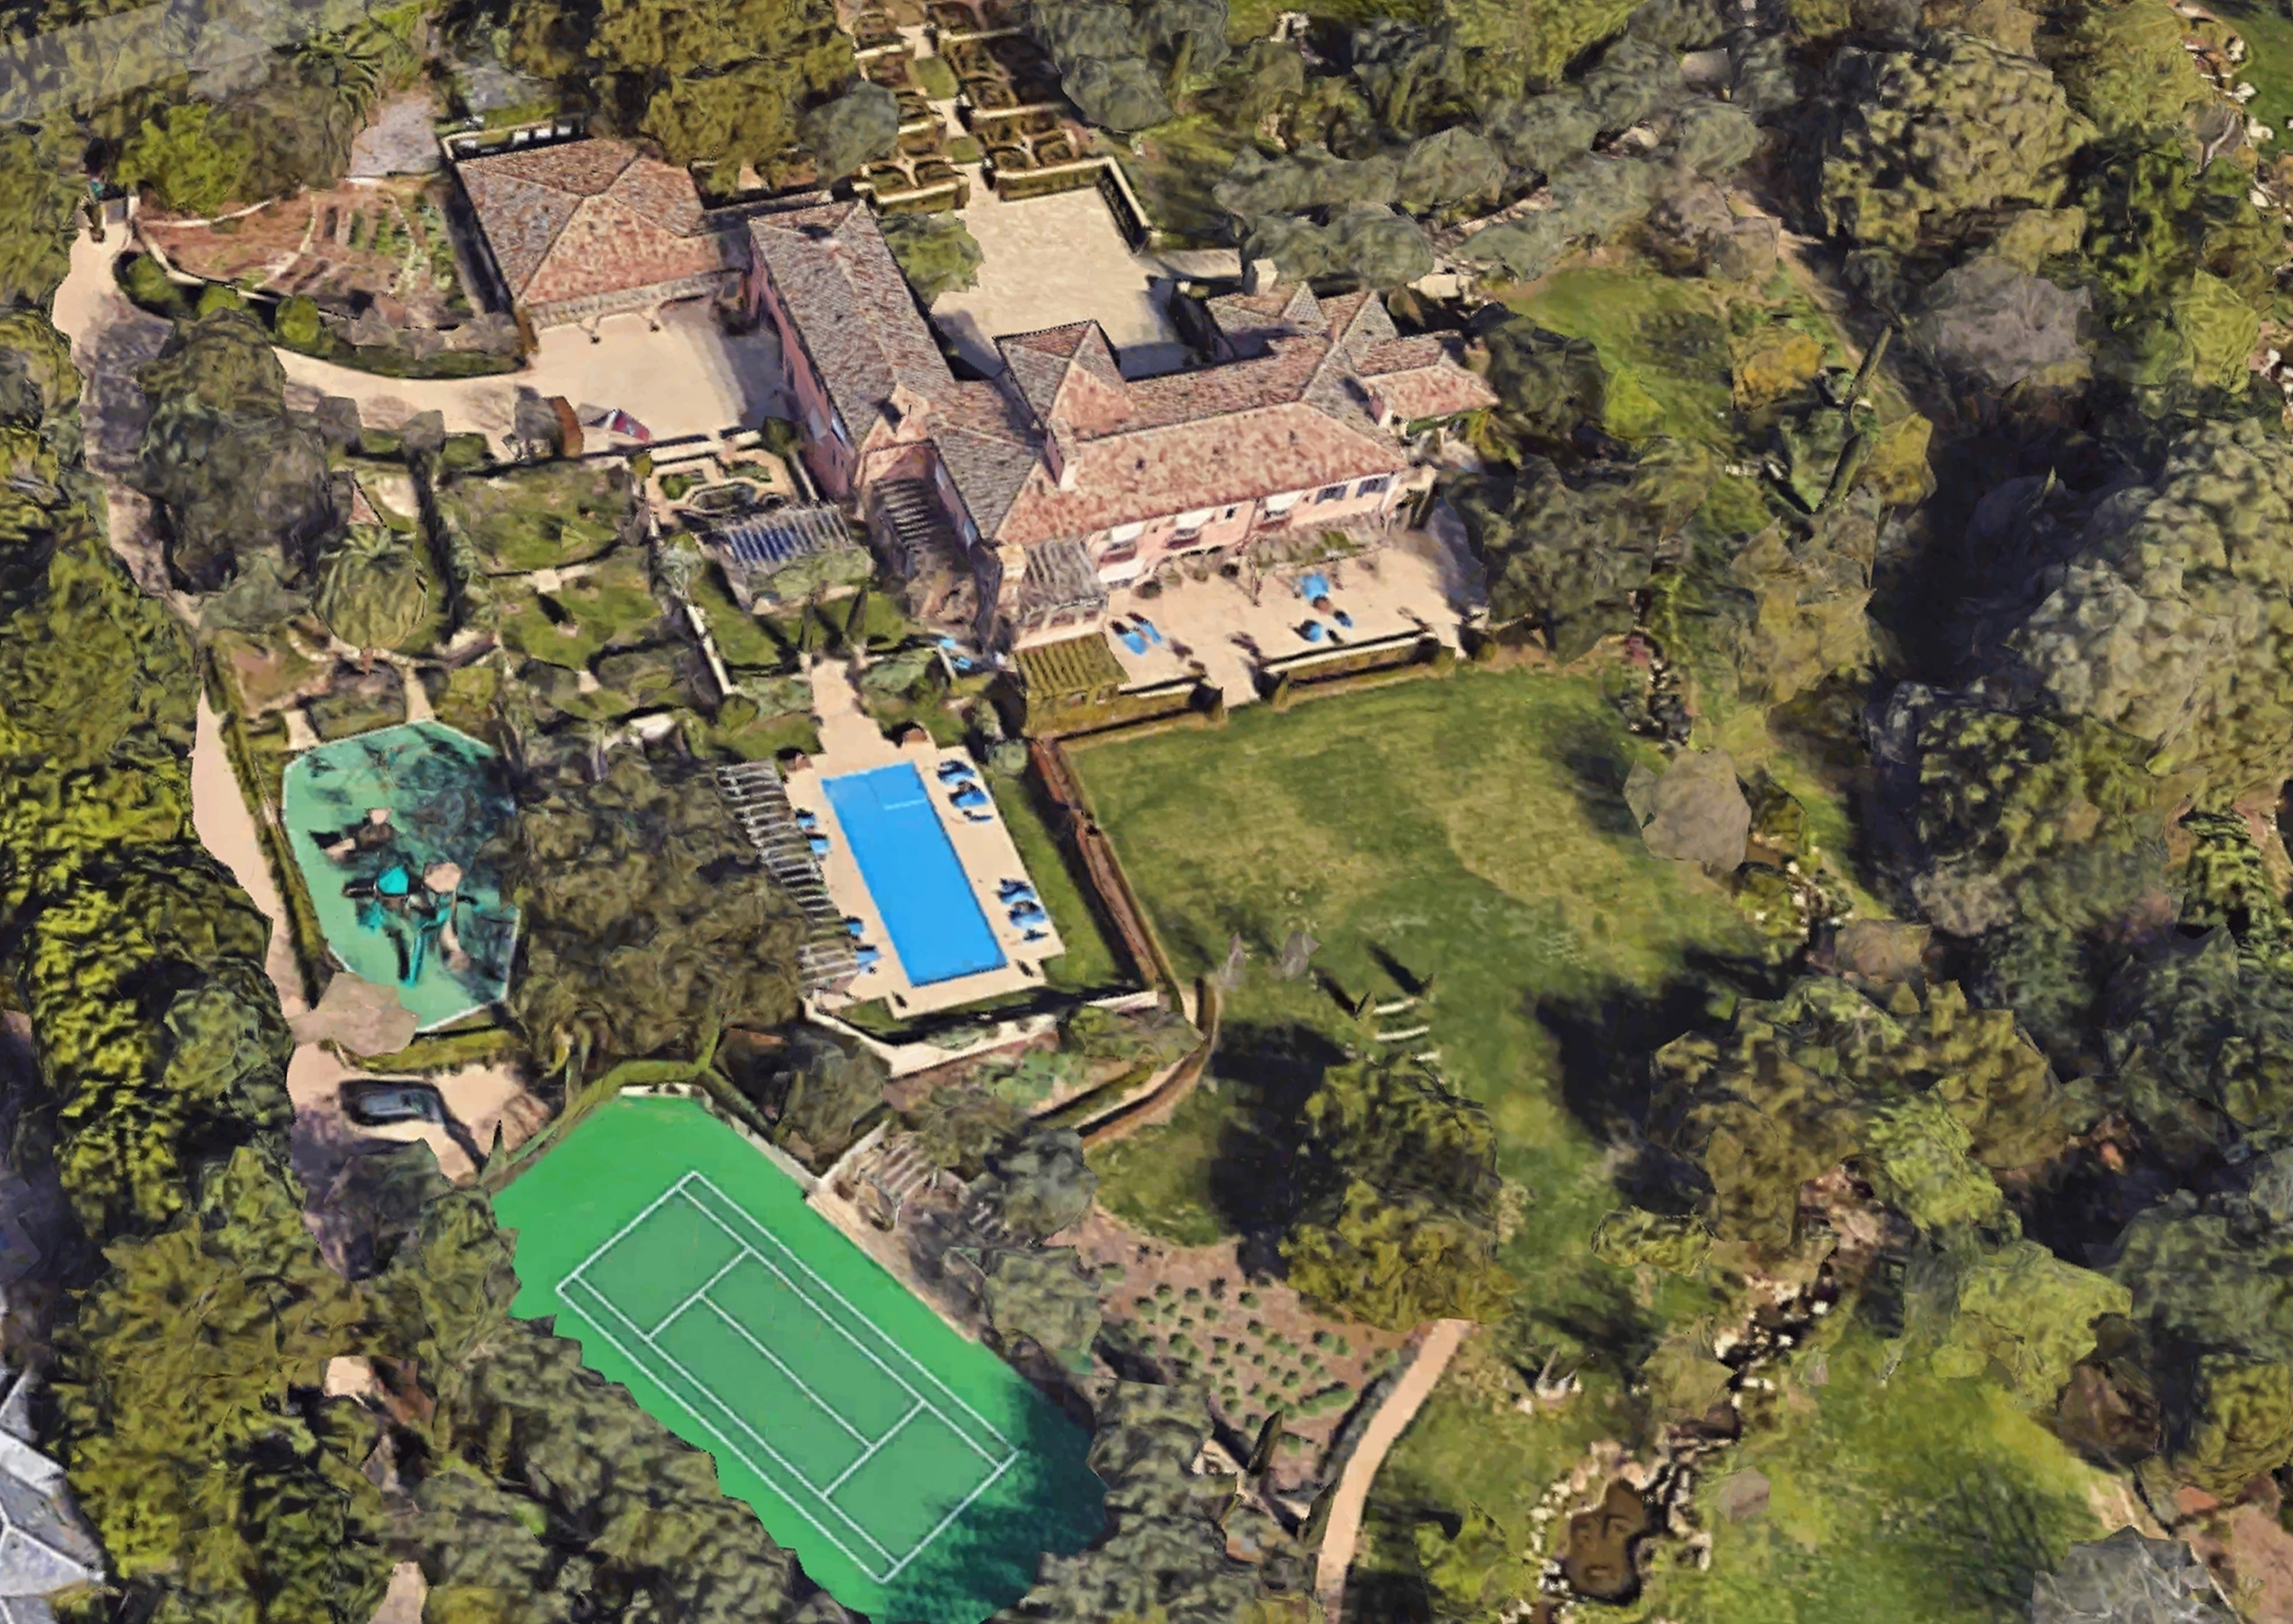 Google Map aerials of Prince Harry and Meghan Markle's new home in Montecito, CA